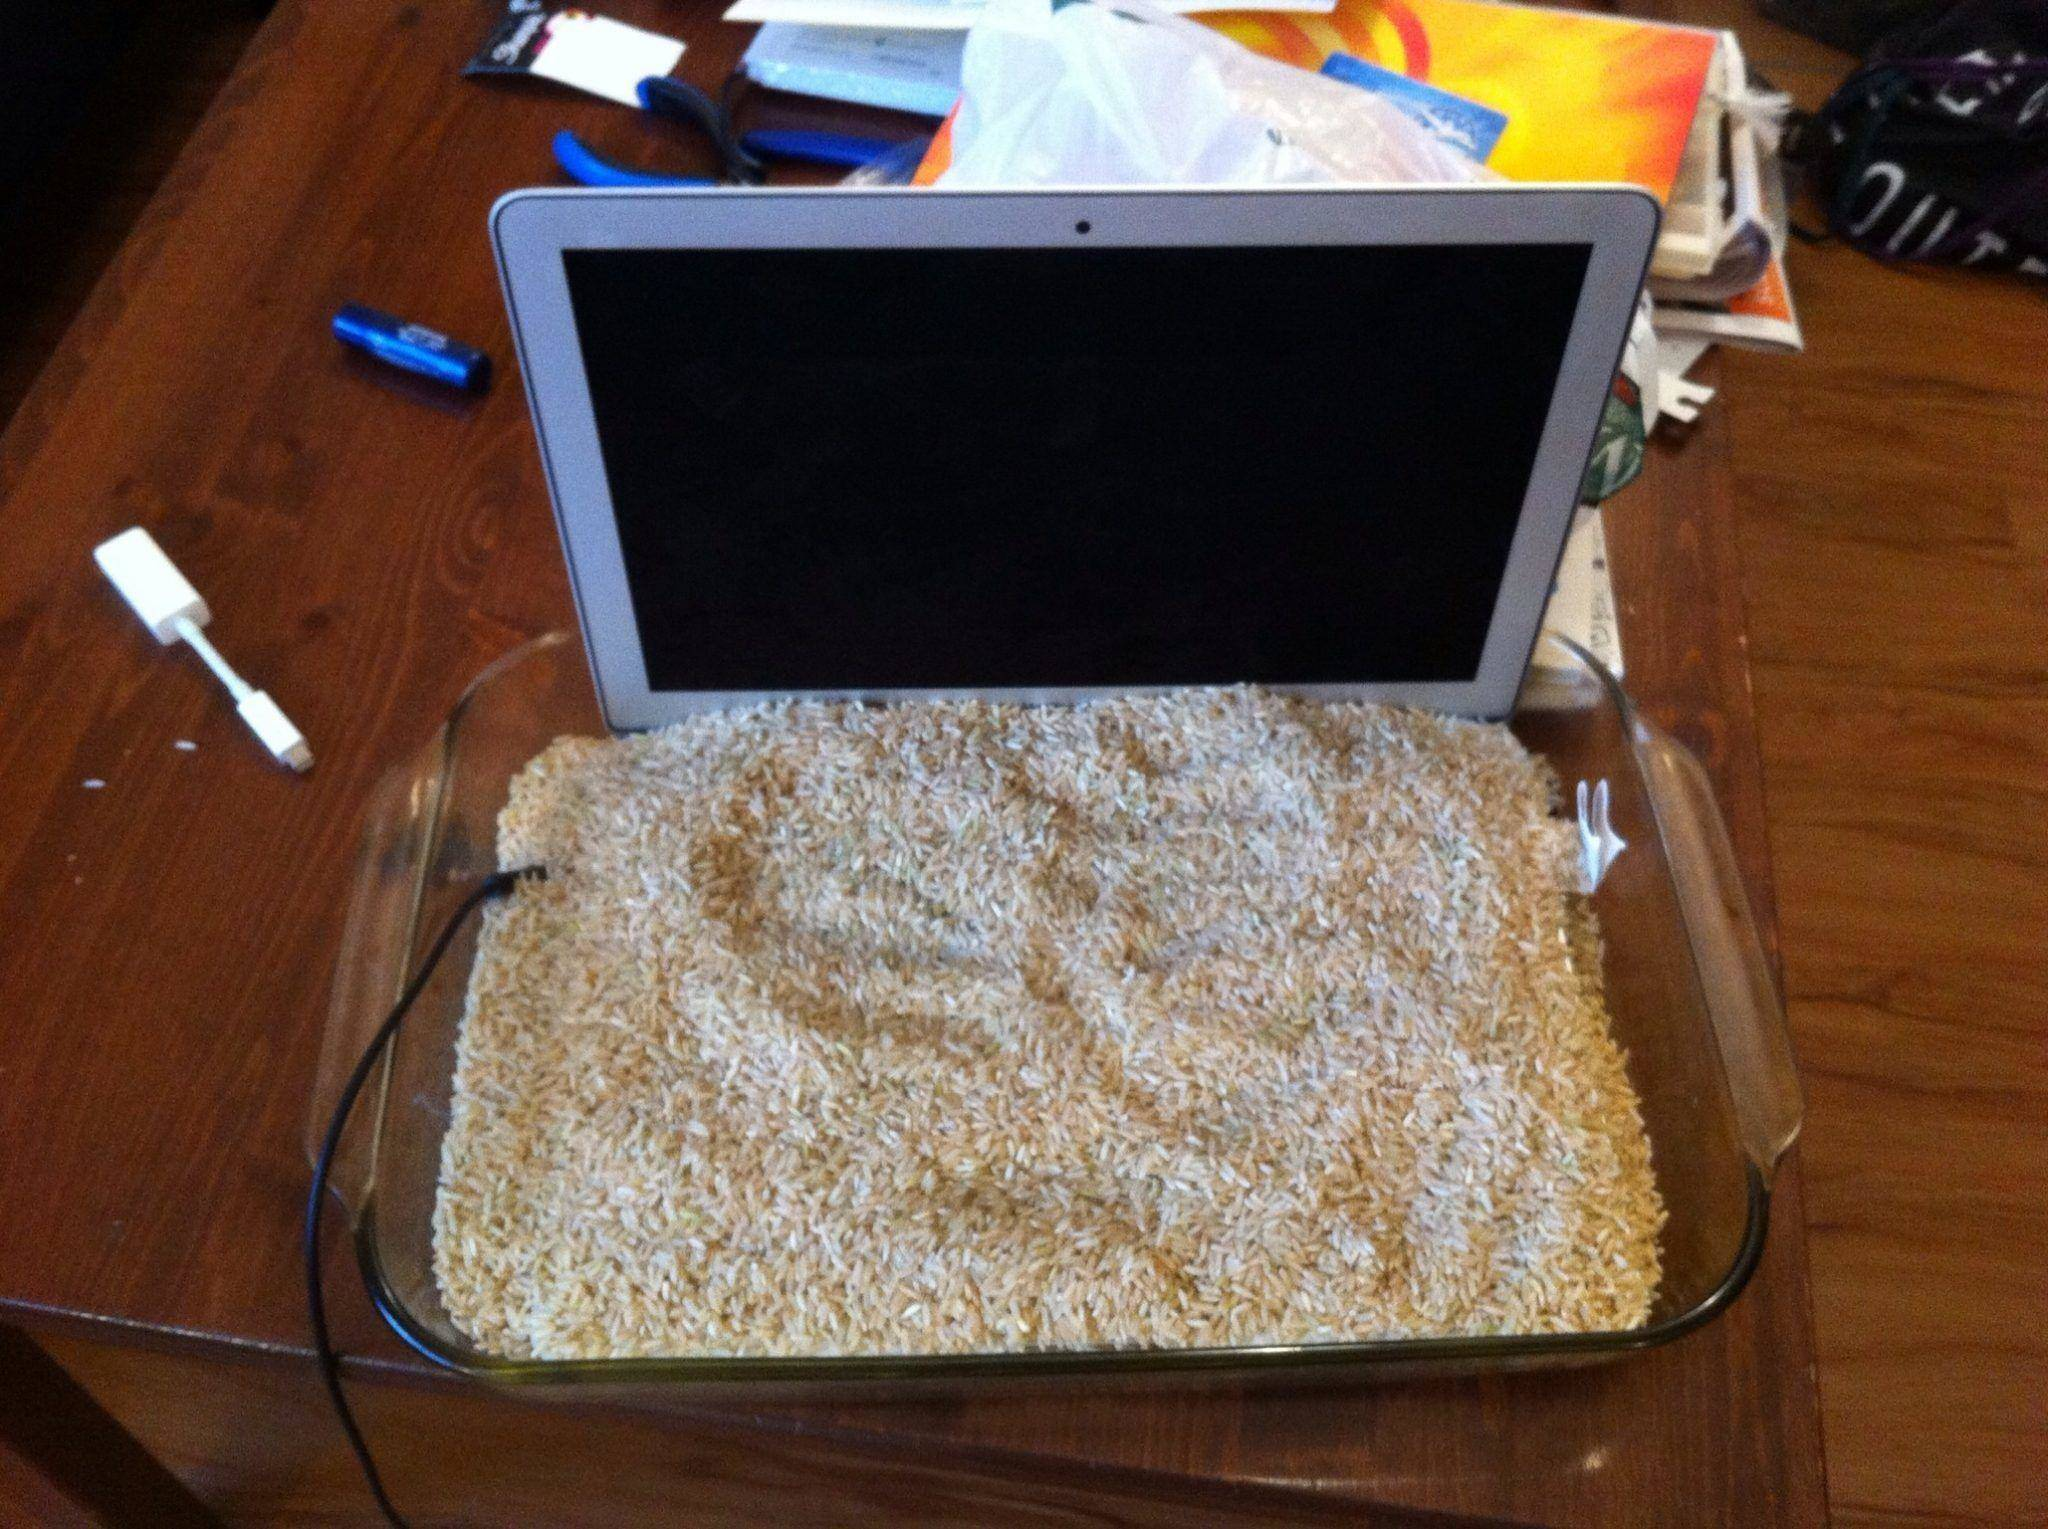 macbook-arroz